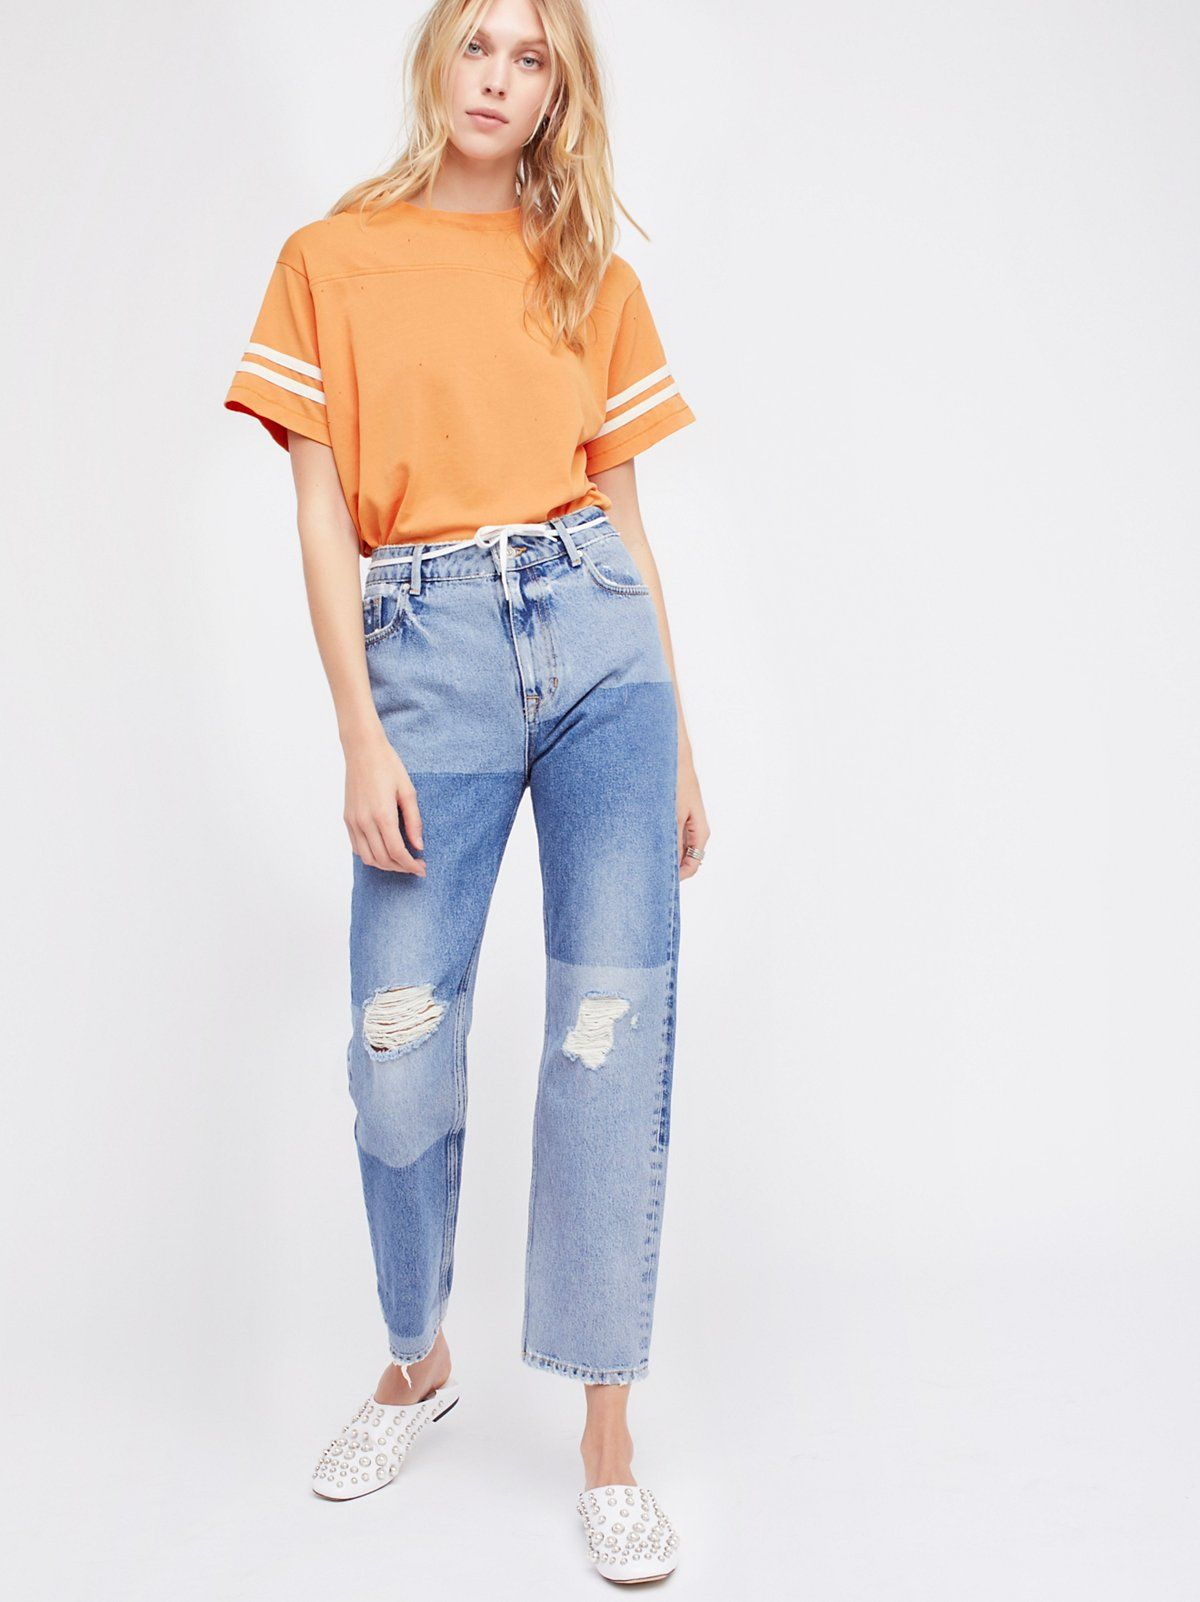 Ripped Patchwork Girlfriend Jeans (With images